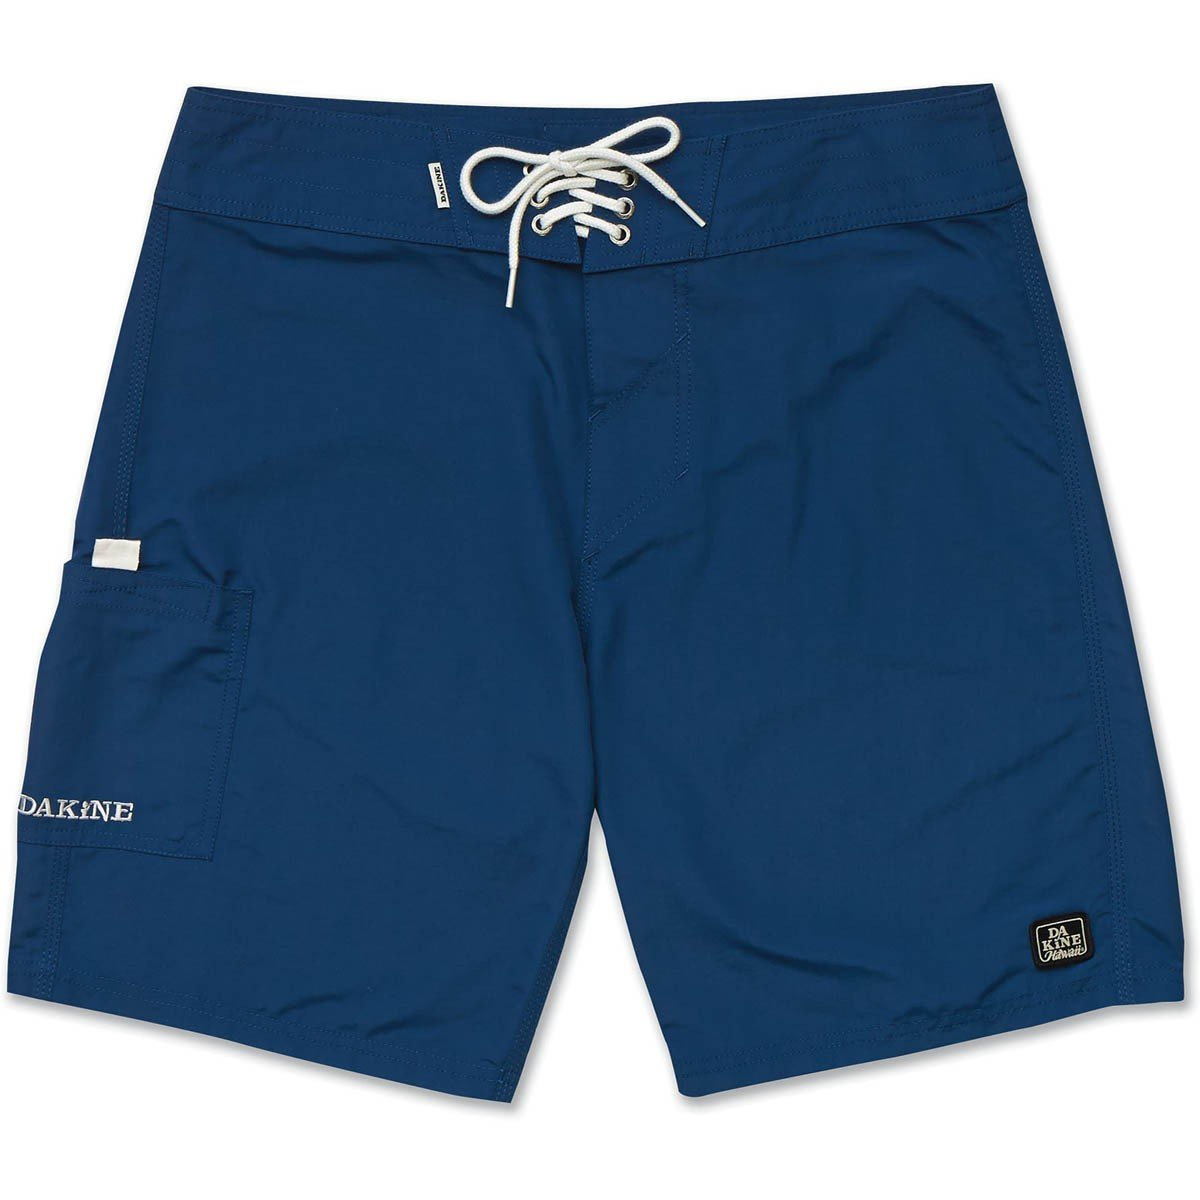 Dakine Men's Beach Boy Boardshort